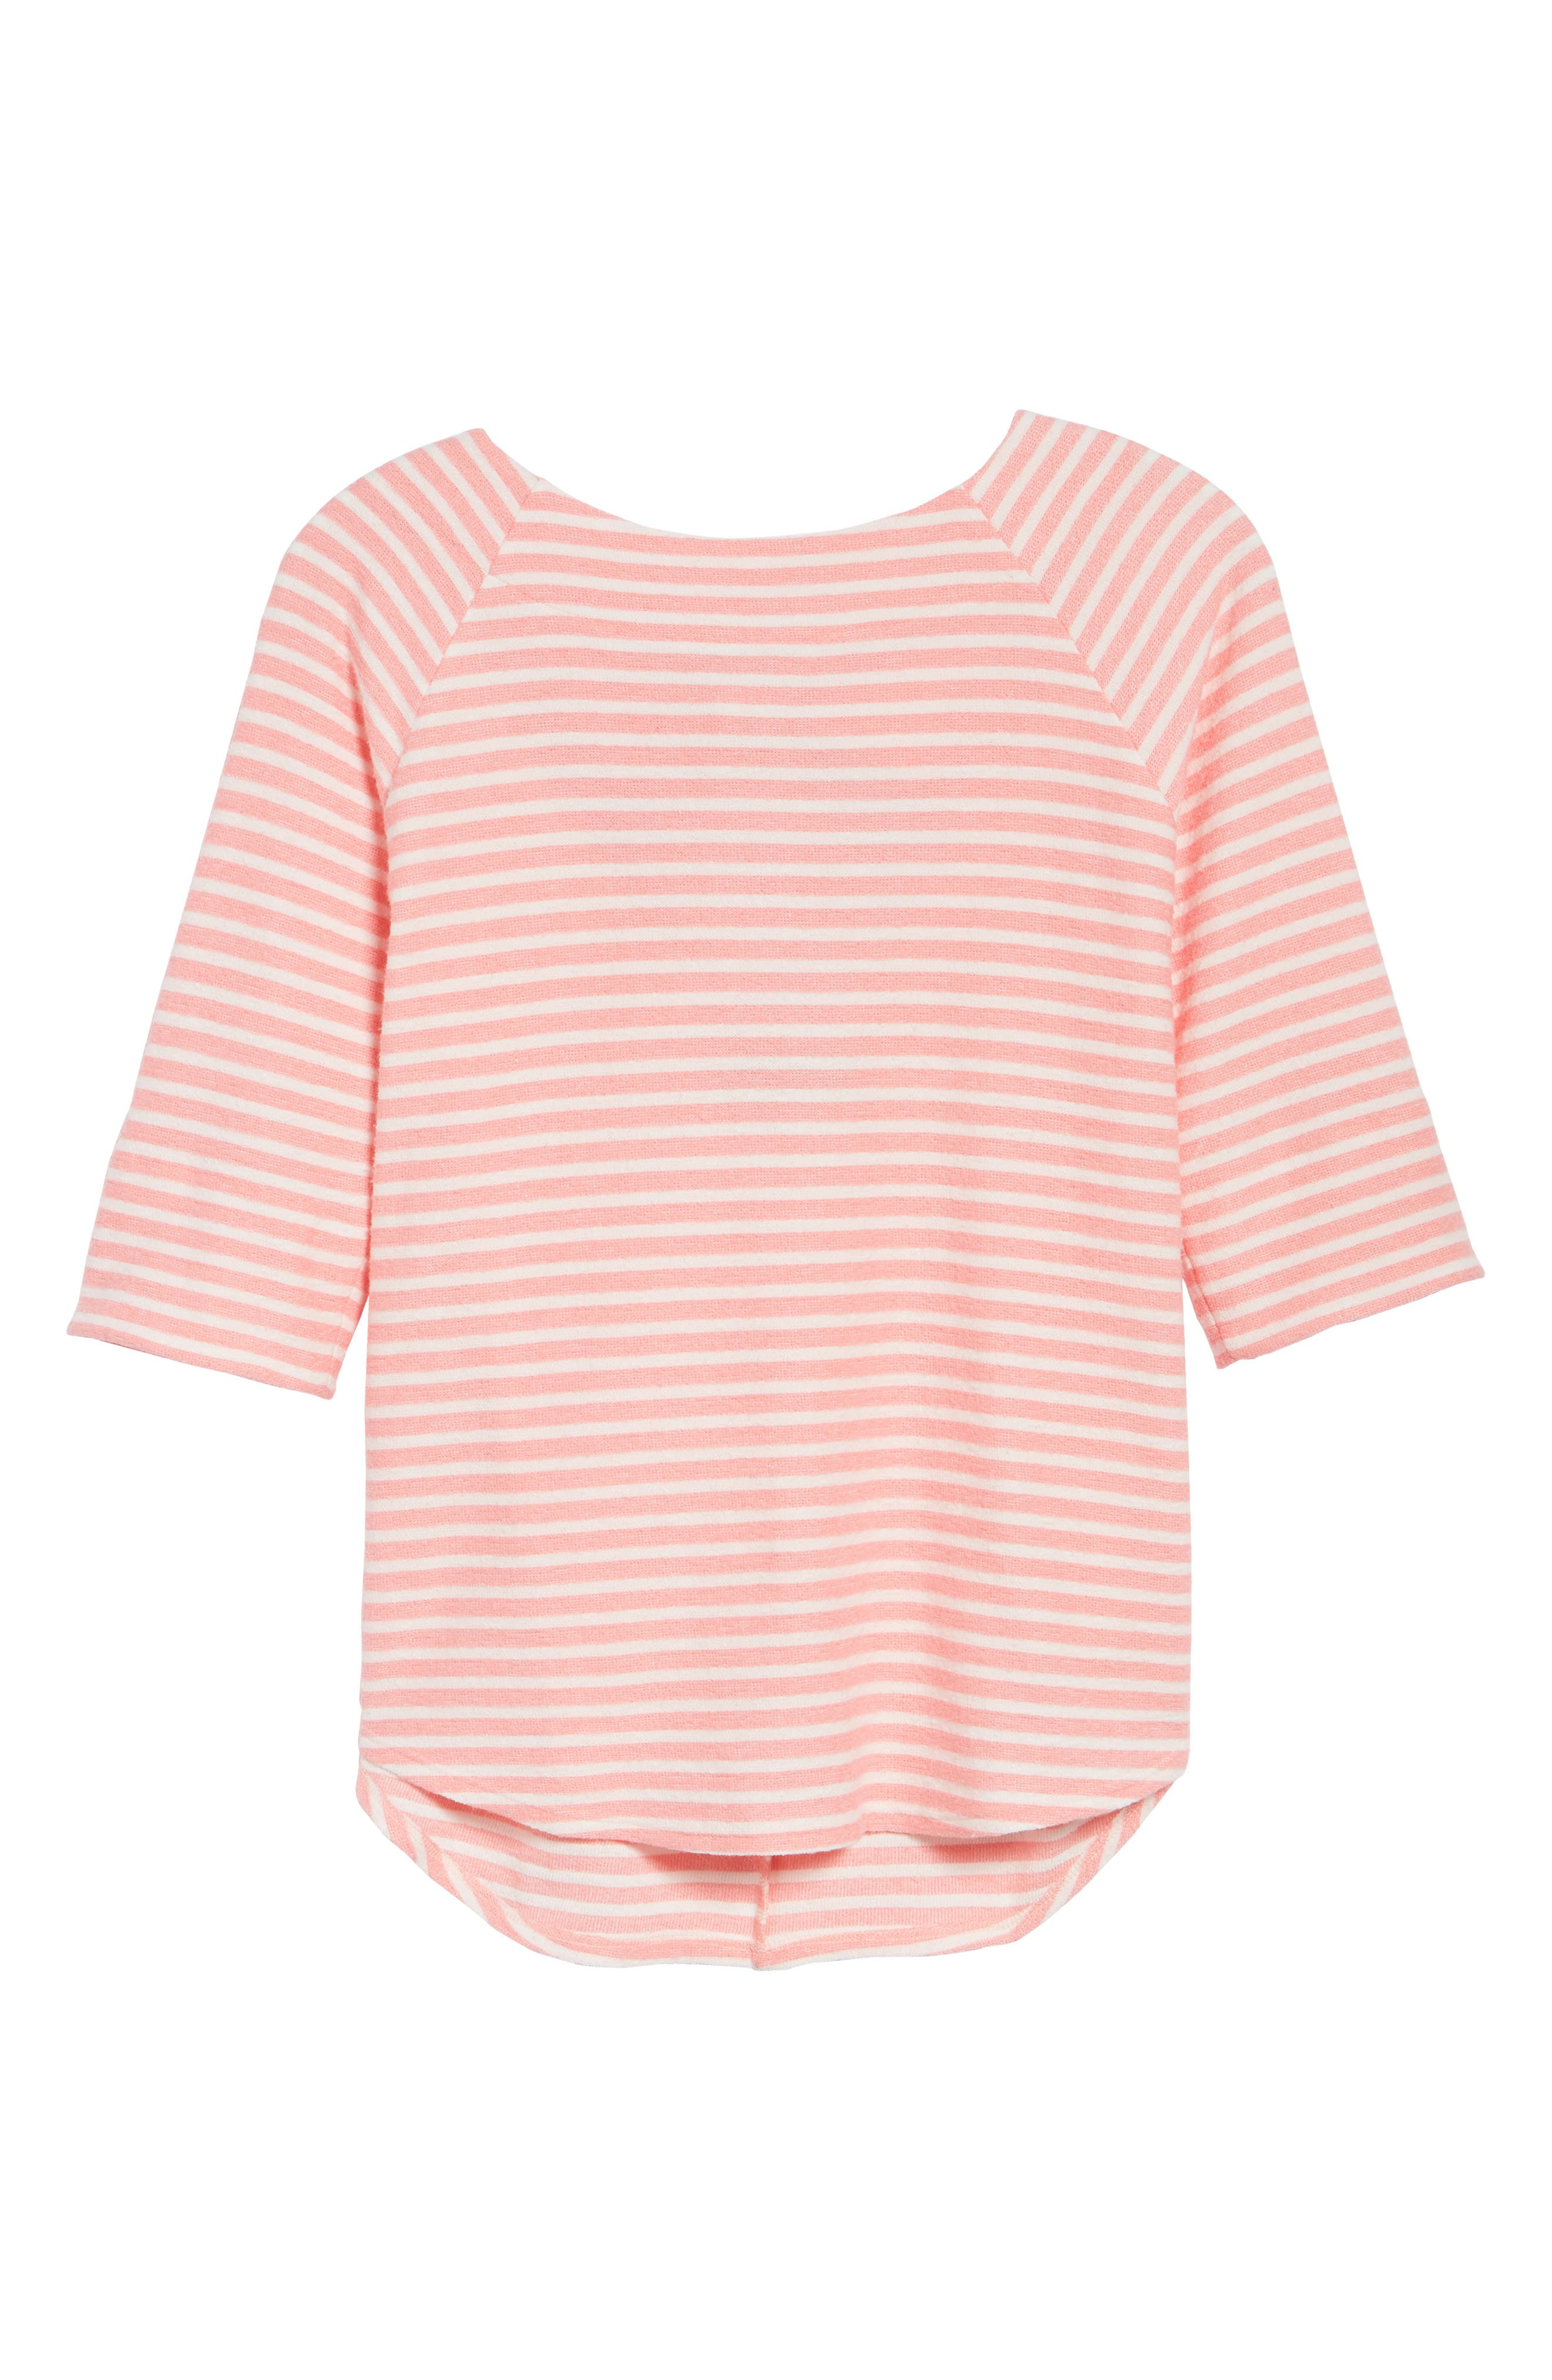 Tie Back Top,                             Alternate thumbnail 7, color,                             Coral Sugar/ White